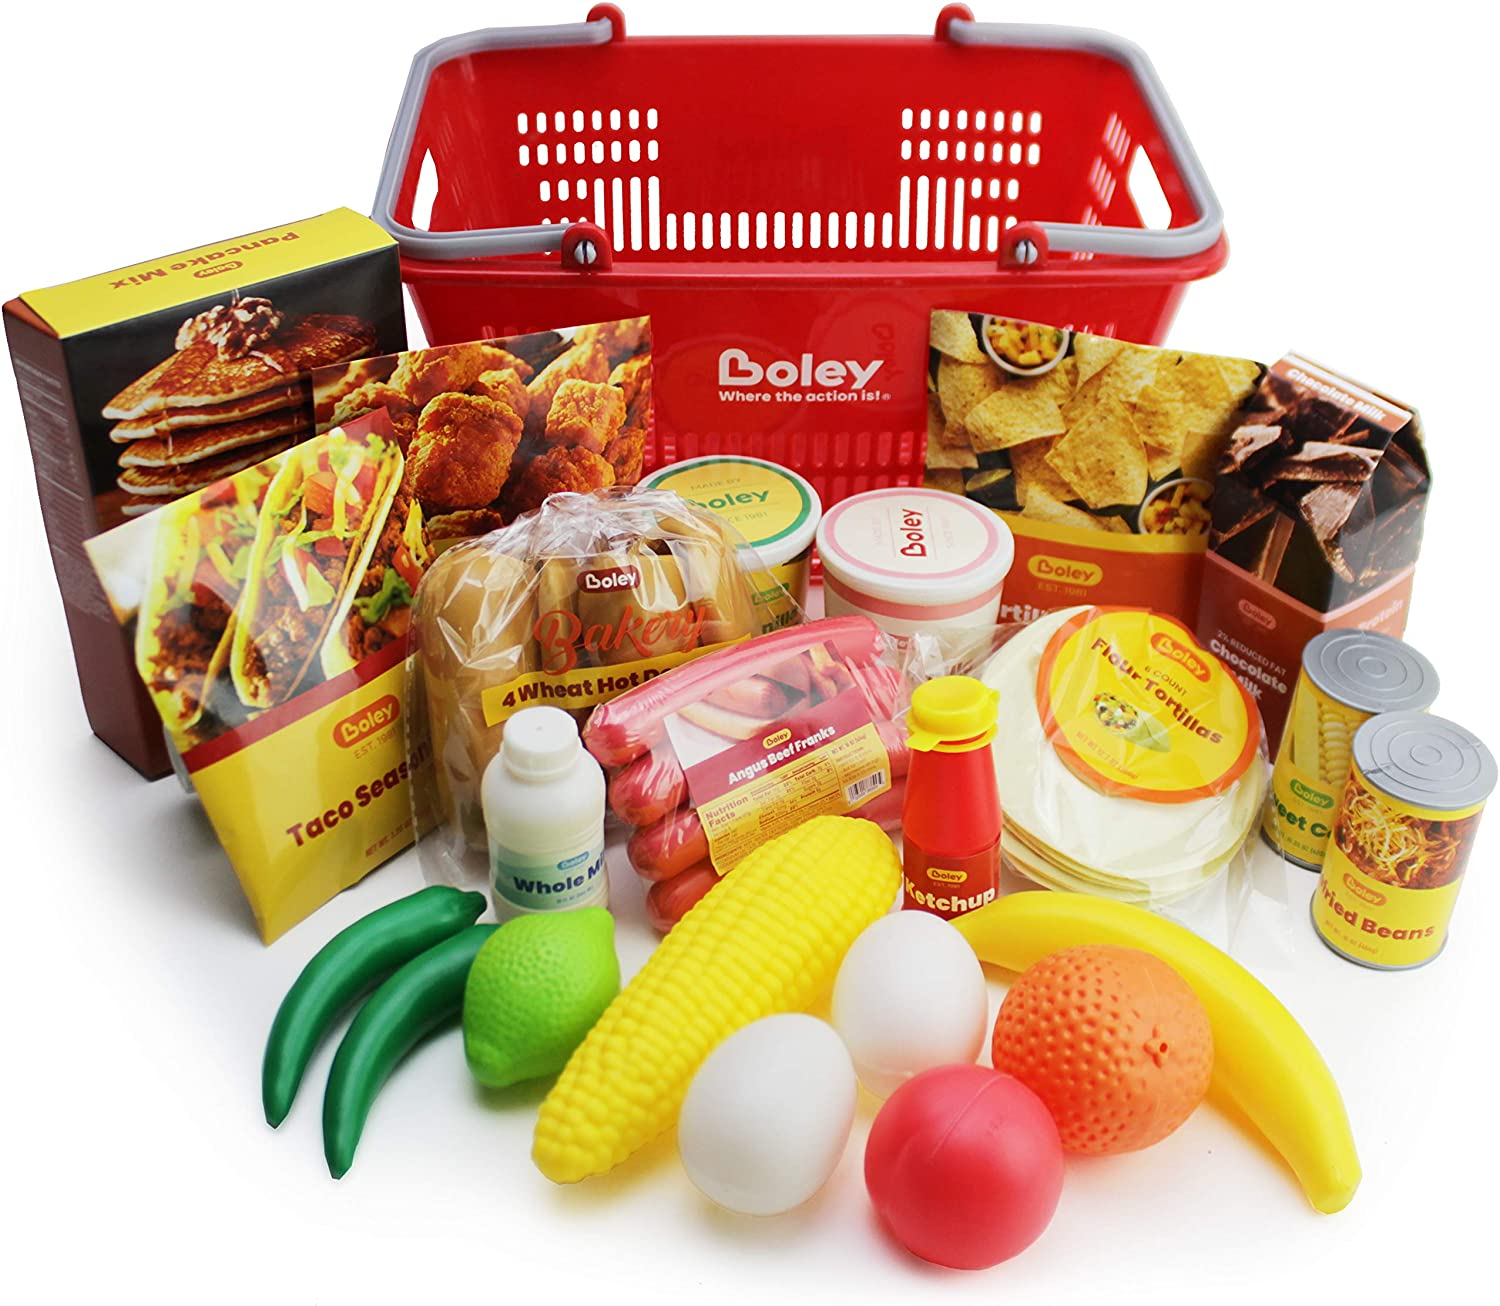 Boley Mart Groceries Play Food Set - 24 Piece Pretend Plastic Play Food Toy Playset with Realistic Grocery Toys and Shopping Basket for Kids Kitchen Accessories